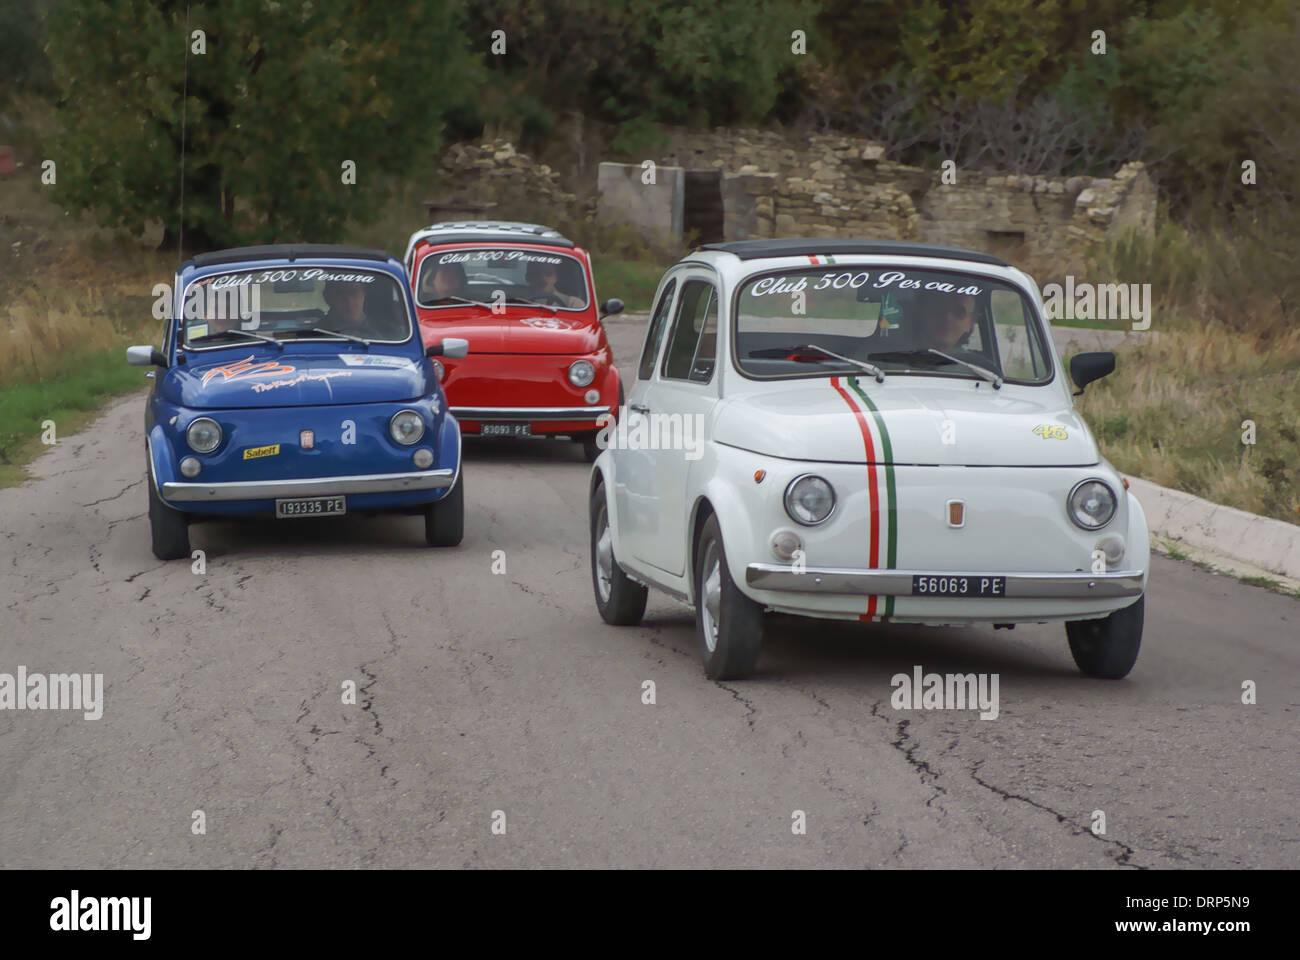 Fiat 500 Retro Fiat 500 Cars Vintage Cars Classic Fiat Cars Customised